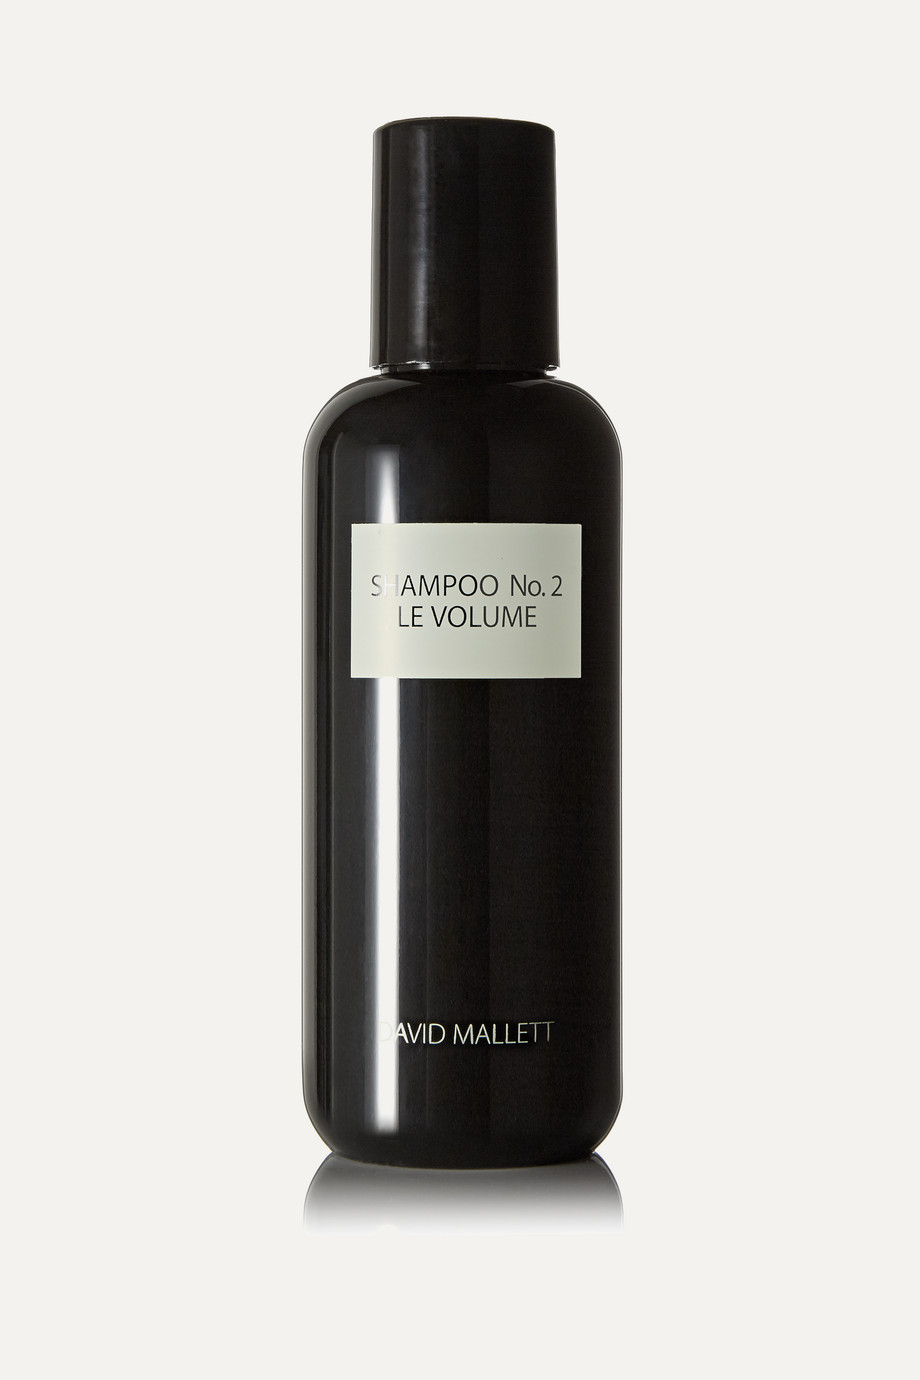 DAVID MALLETT Shampoo No.2: Le Volume, 250ml